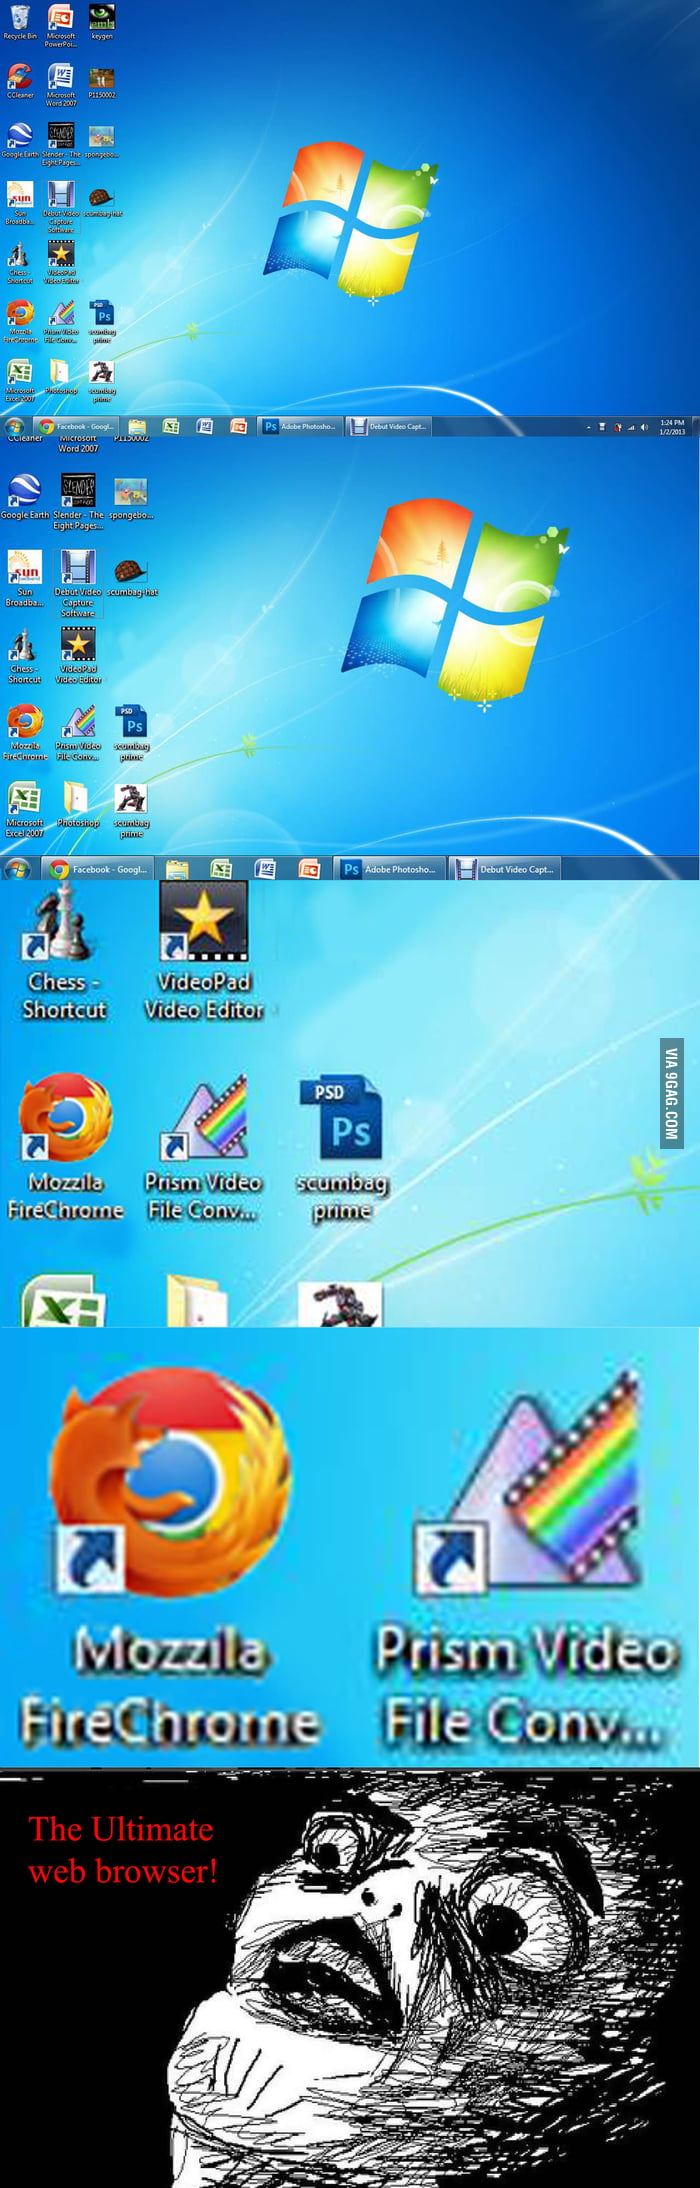 Just an ordinary desktop... Wait, what?!